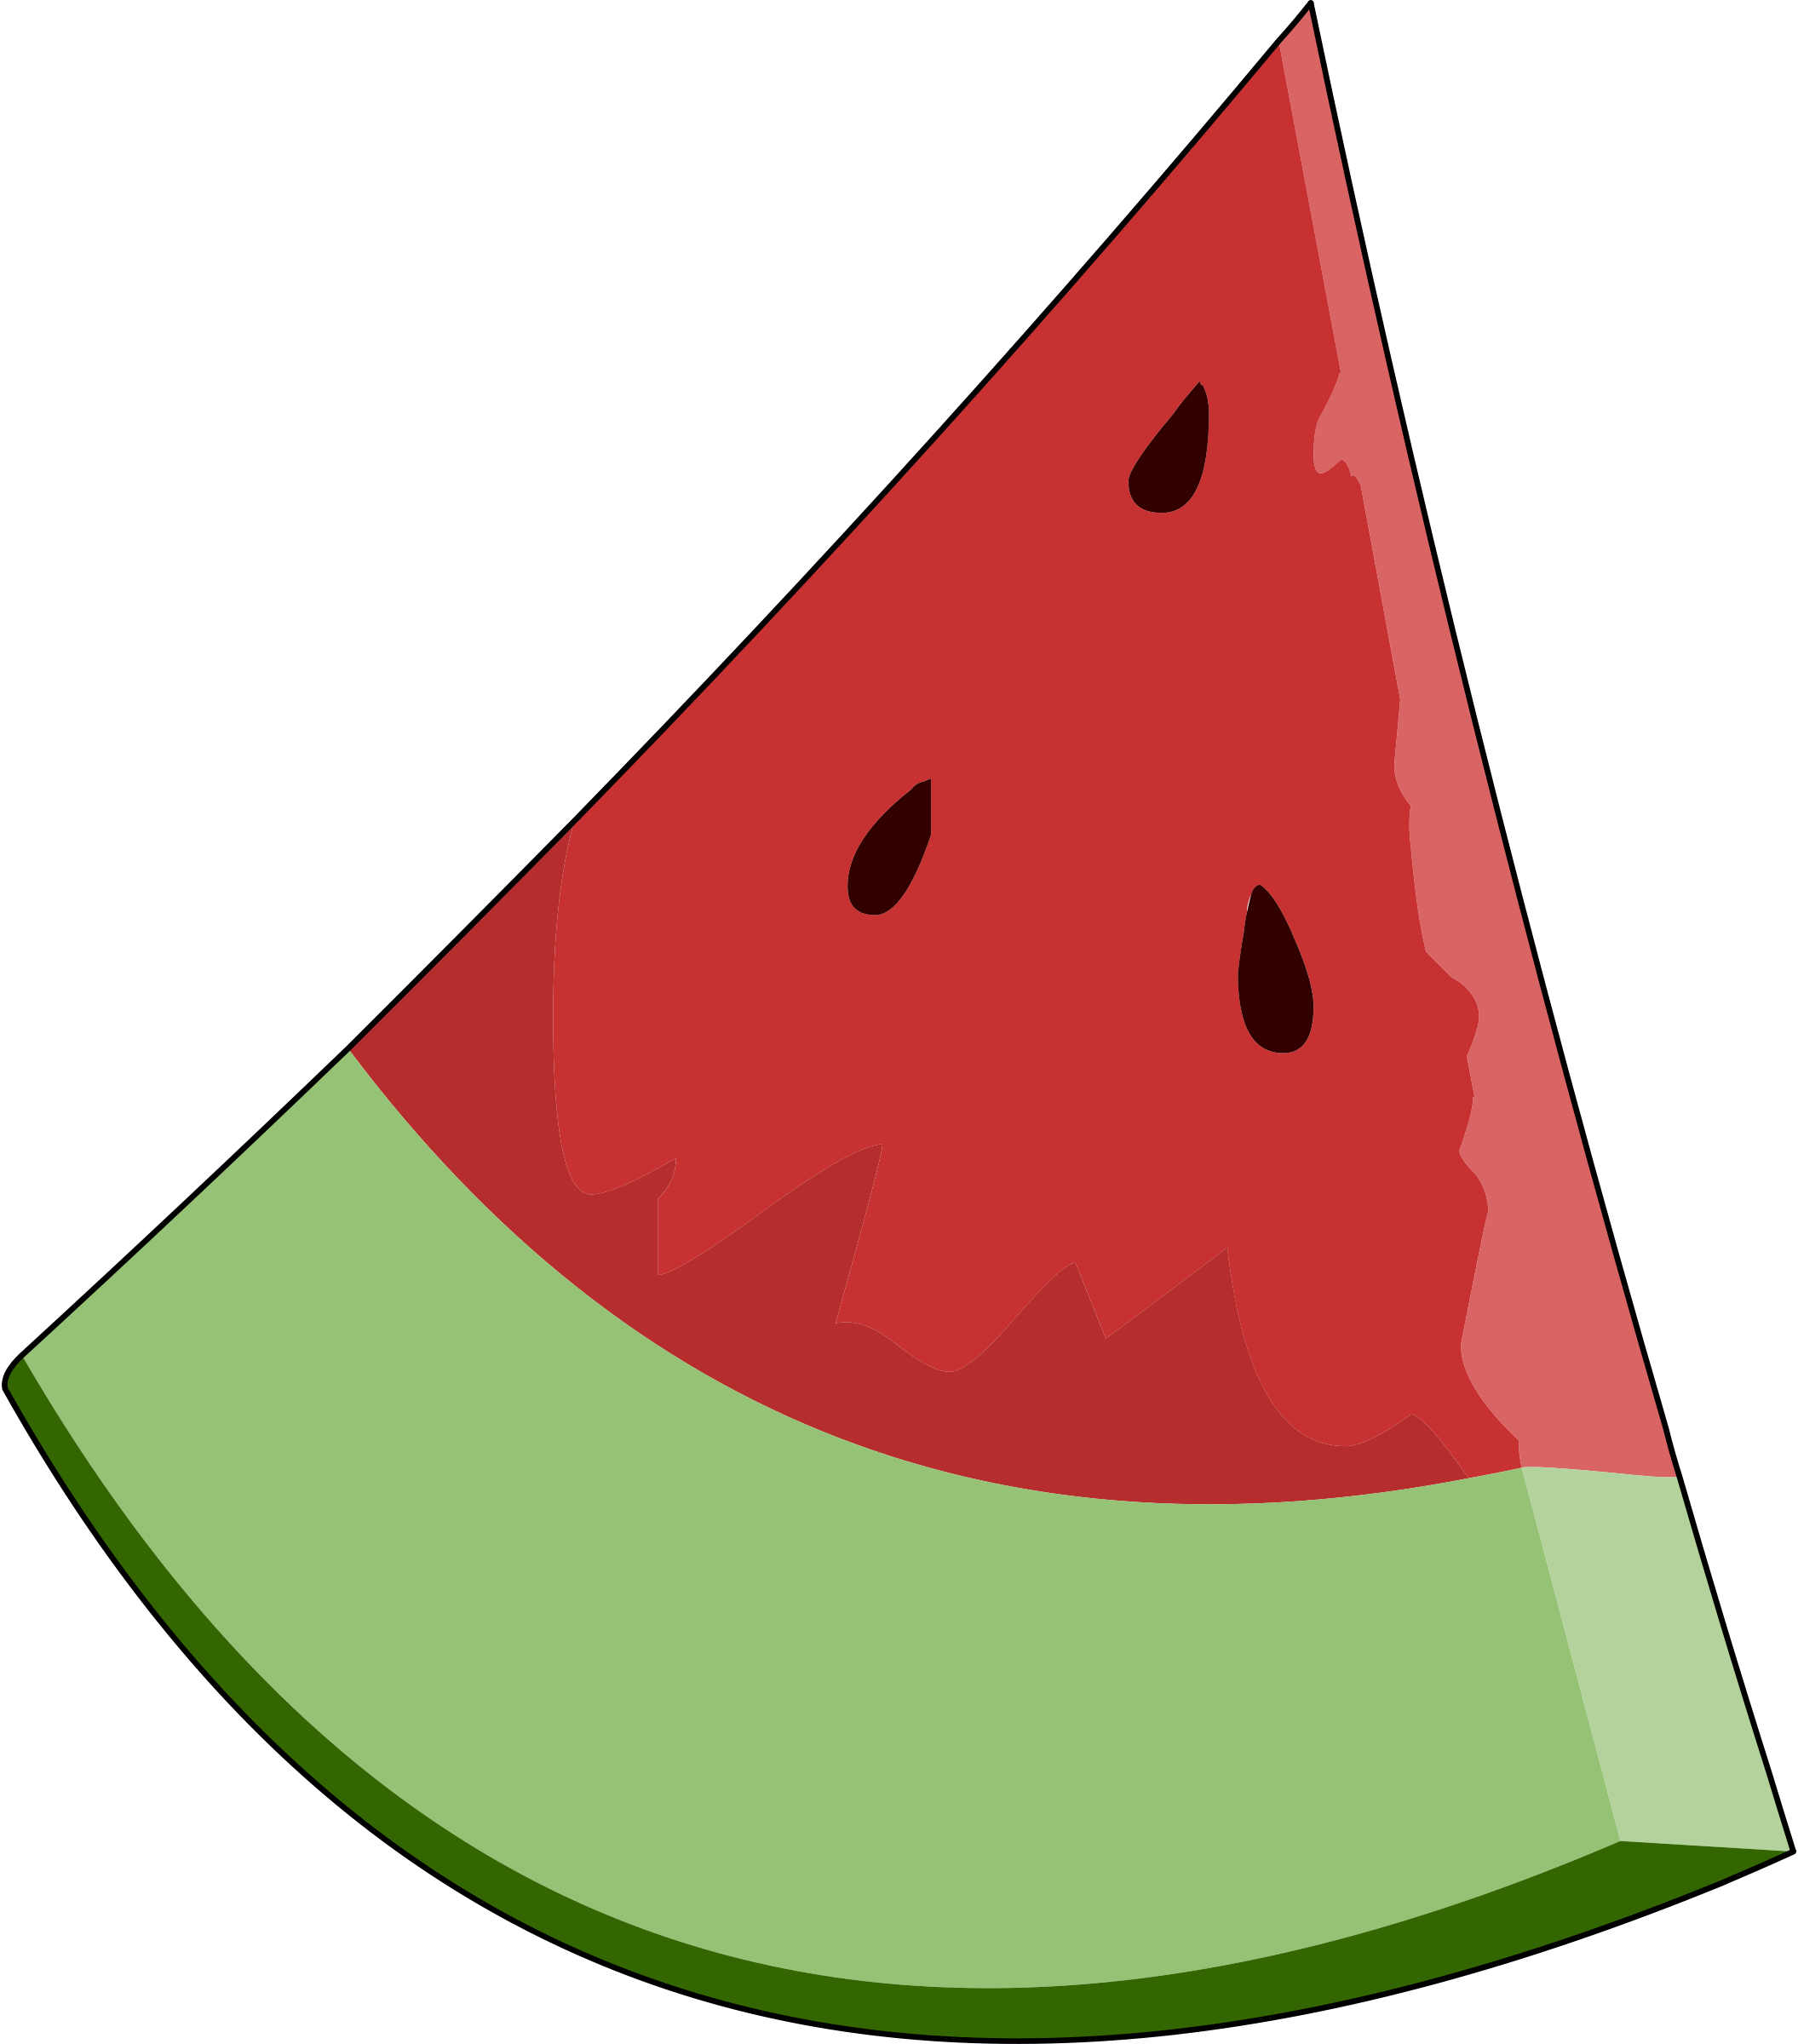 Seeds Clipart Watermelon Seed#3890794 vector